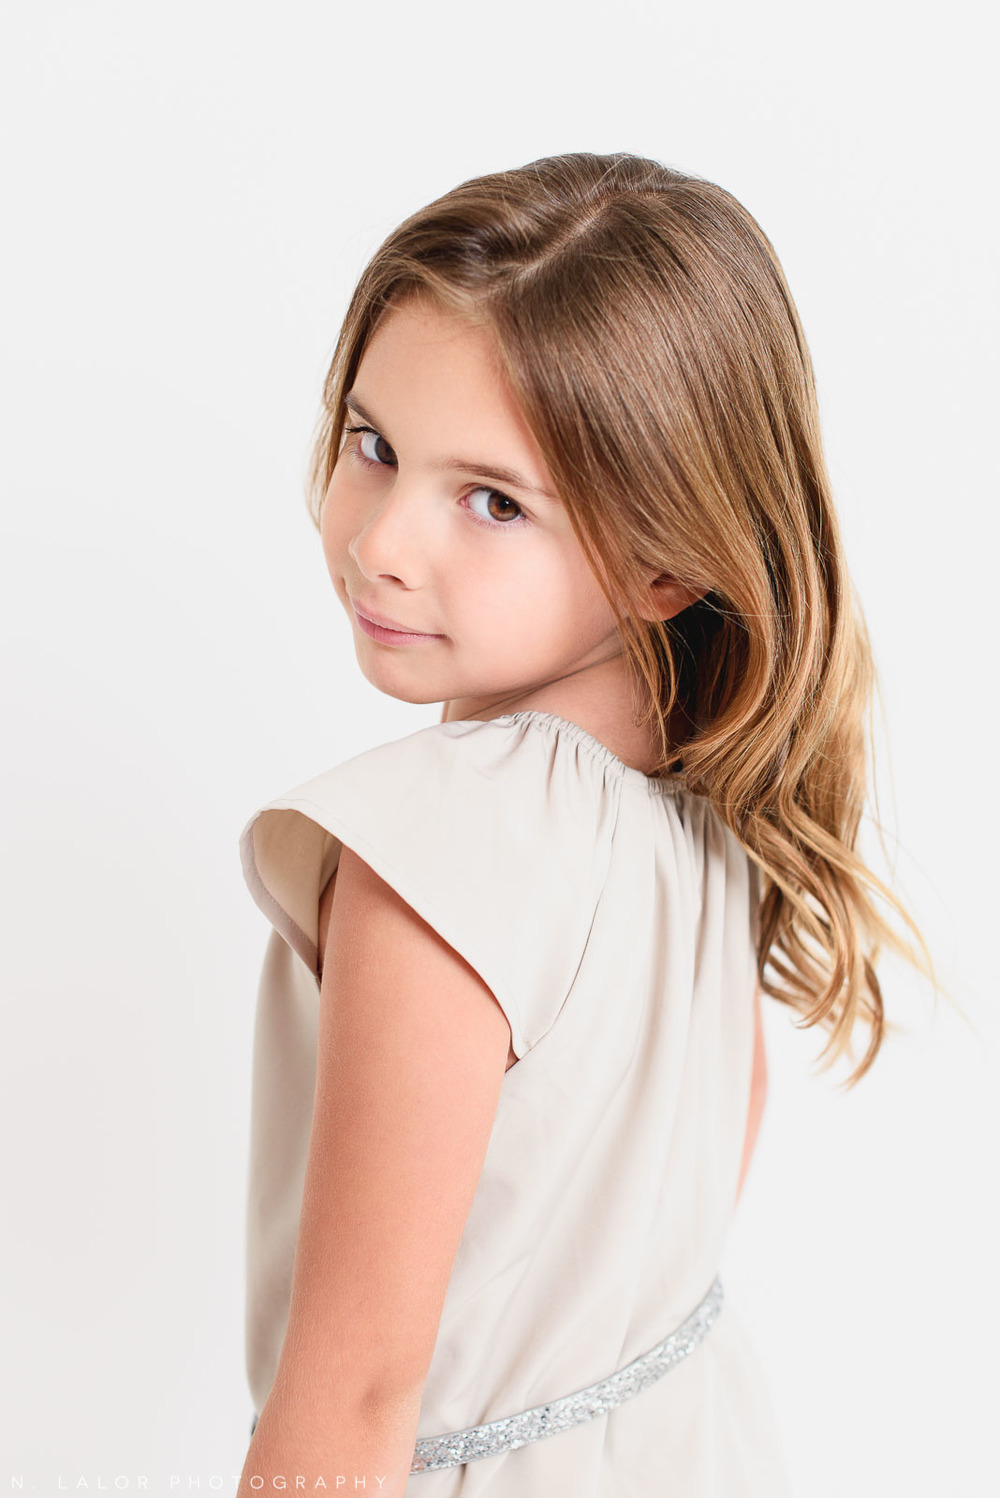 Over the shoulder. Editorial studio portrait of 6-year old girl by N. Lalor Photography in Greenwich, Connecticut.